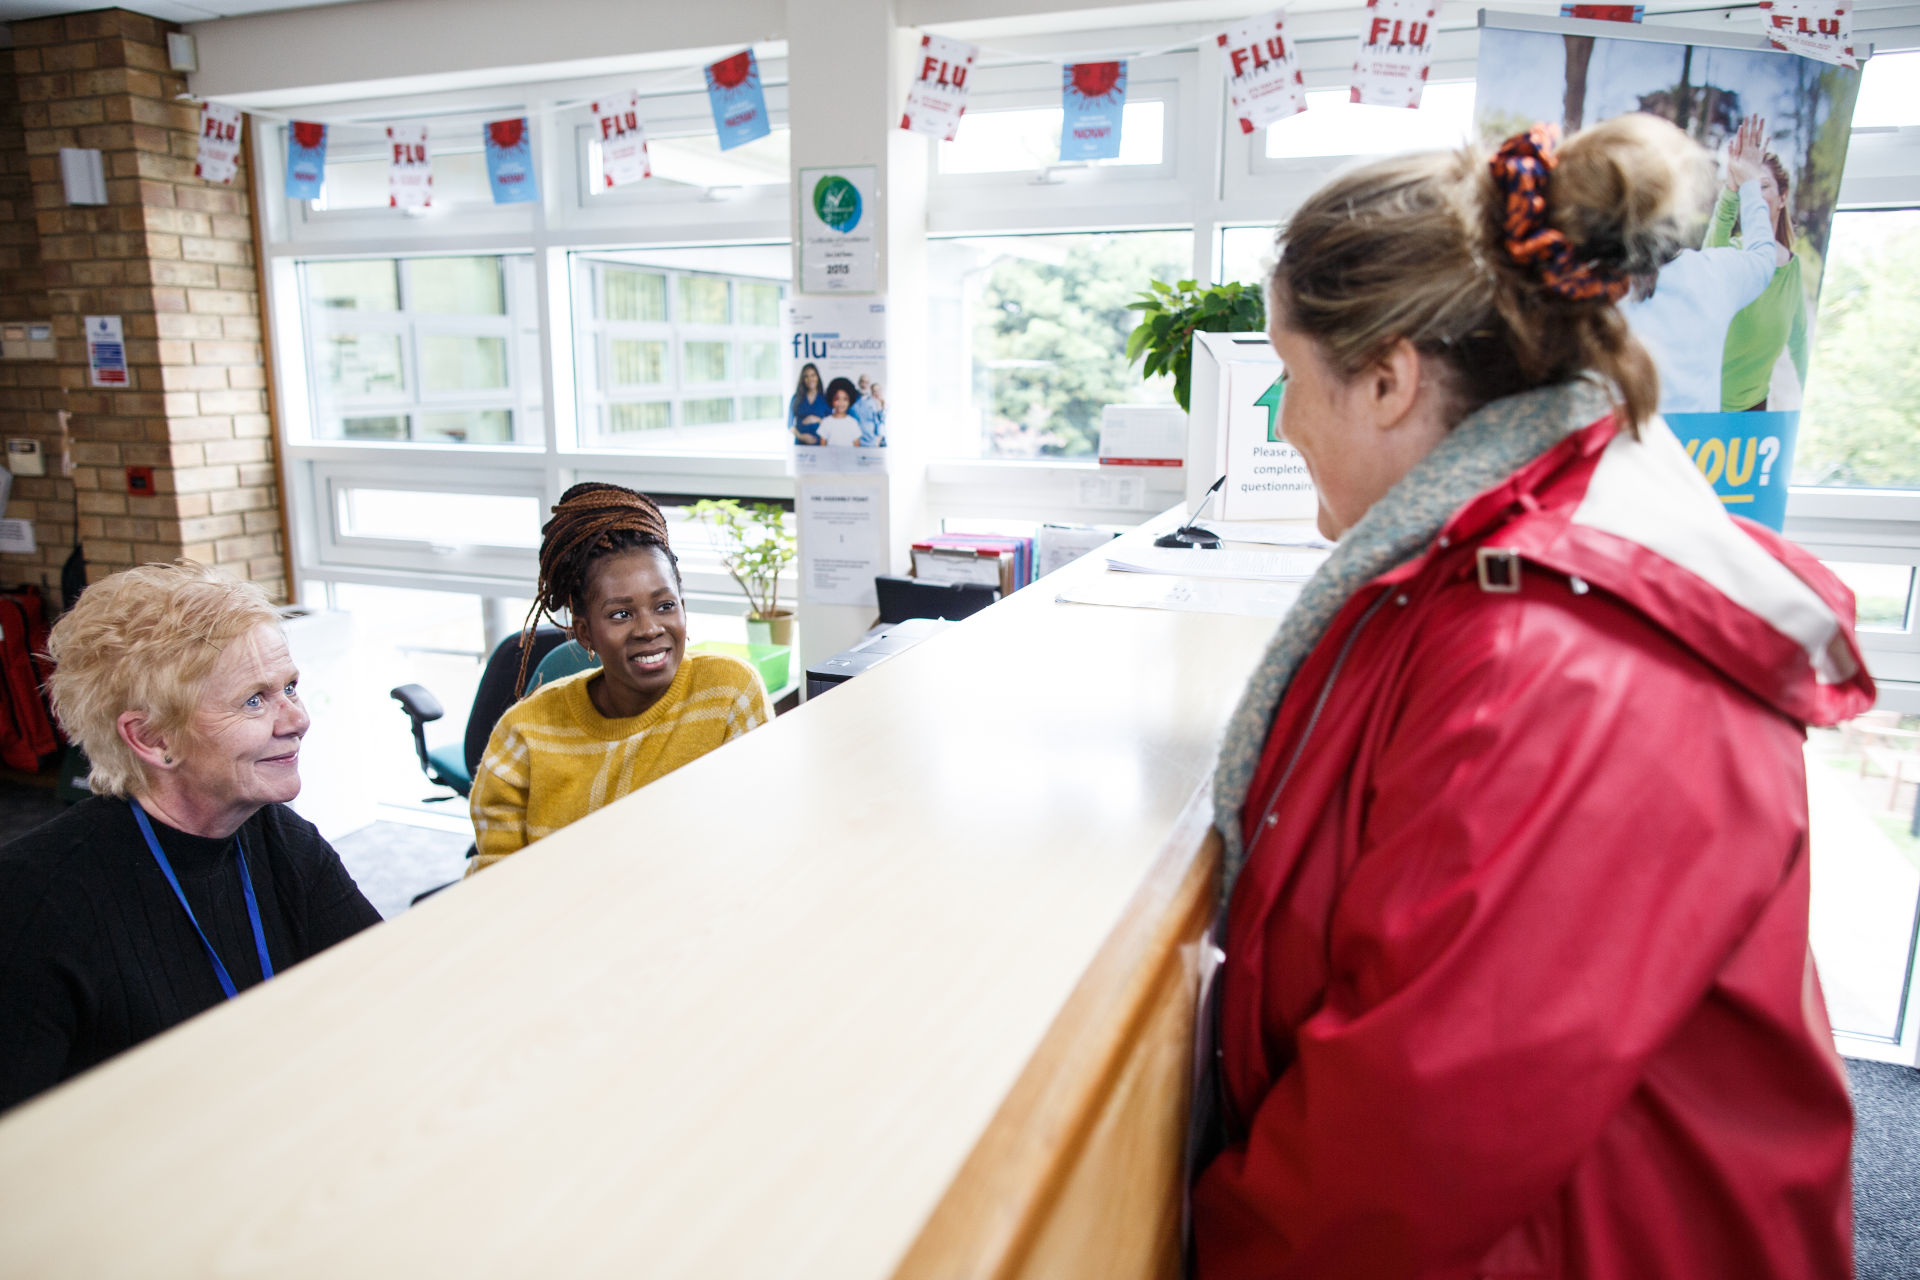 Female in red jacket at reception desk